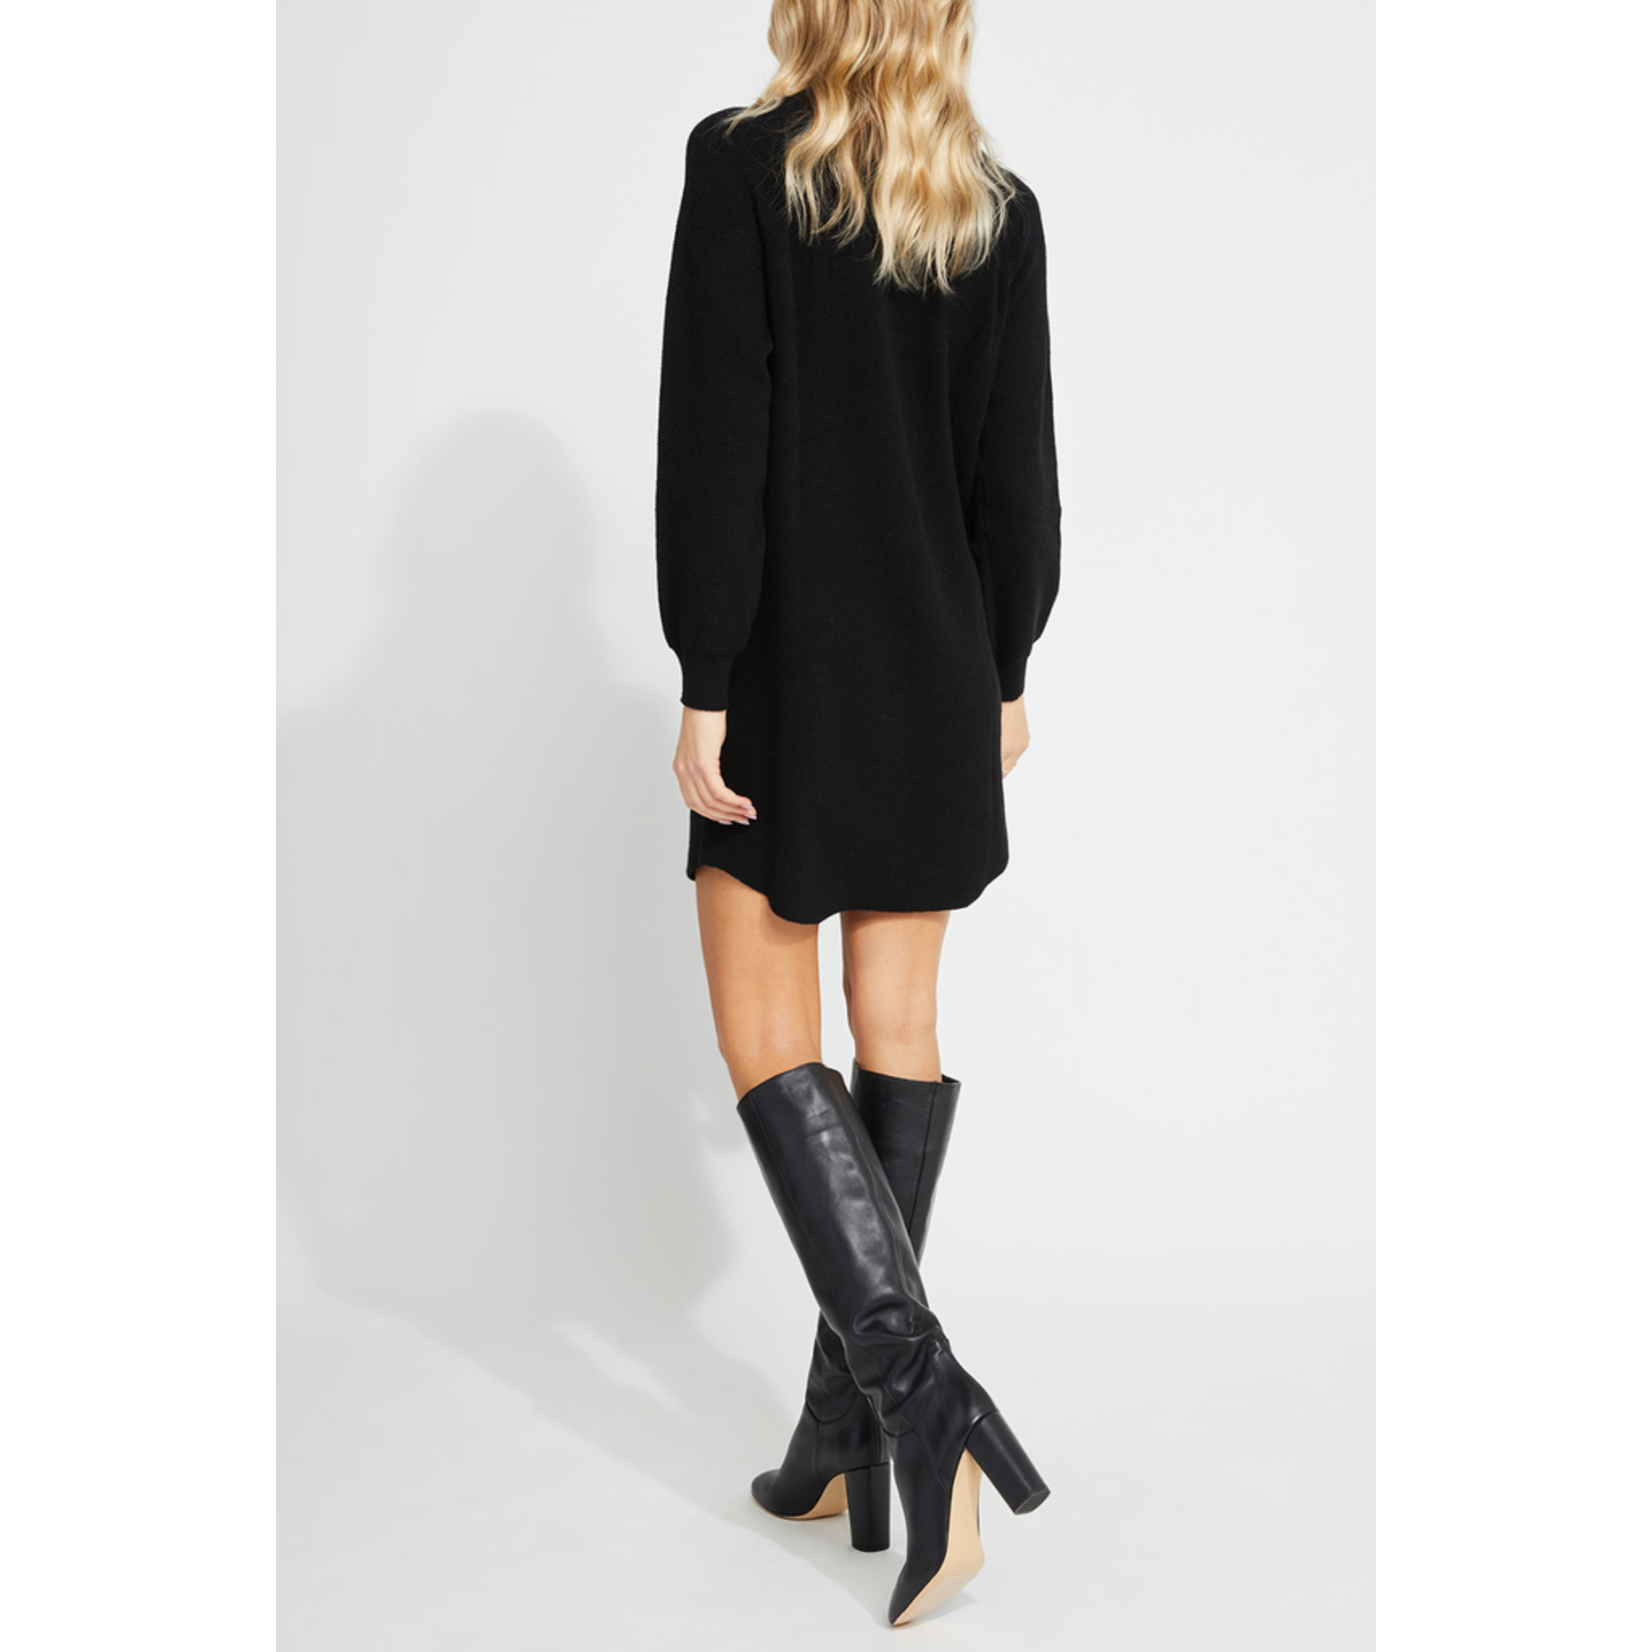 Gentle Fawn Mid Thigh Sweater dress